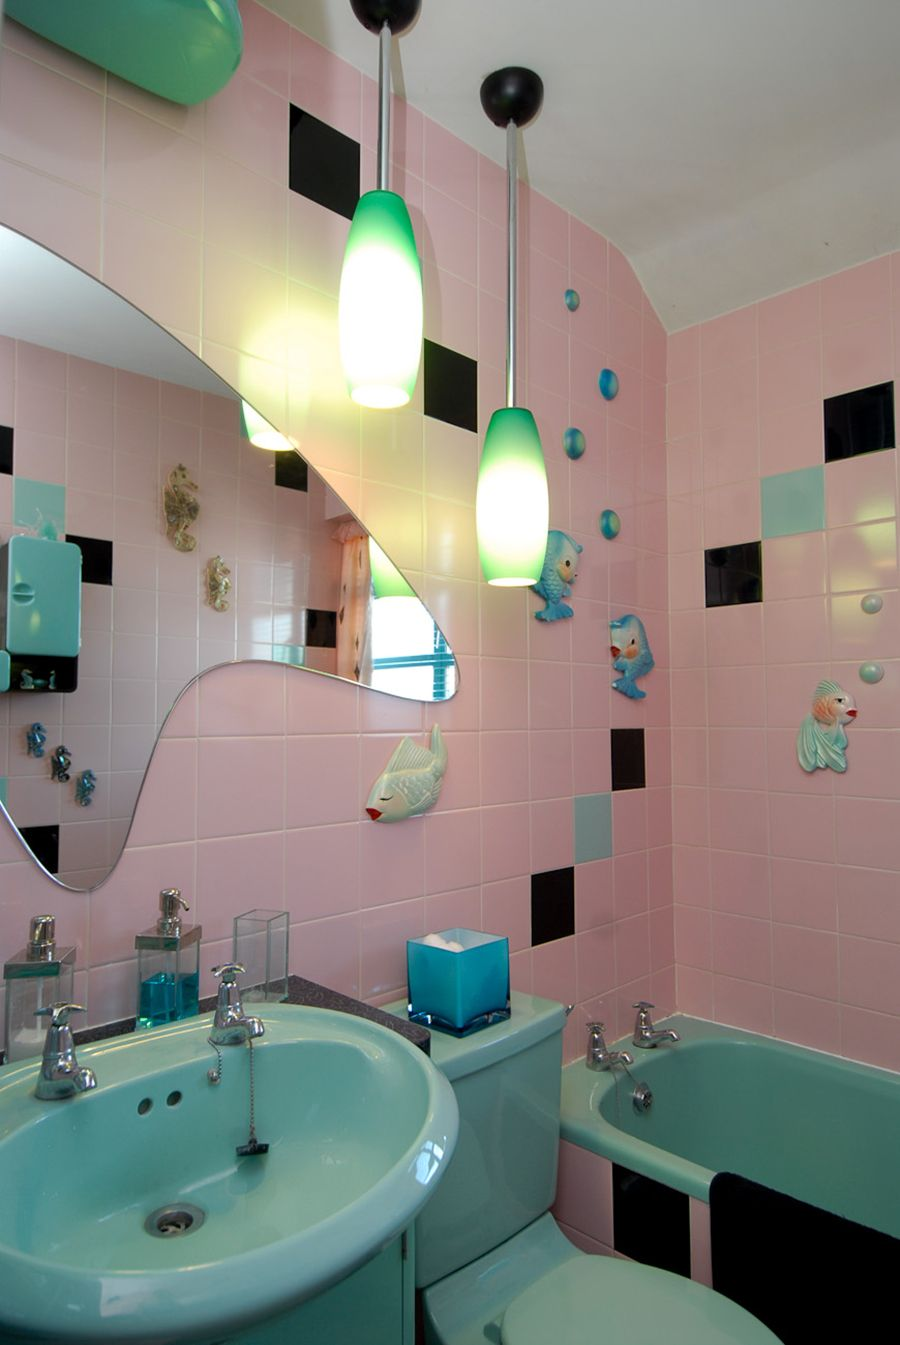 vintage - retro - mid-century modern pink and aqua bathroom